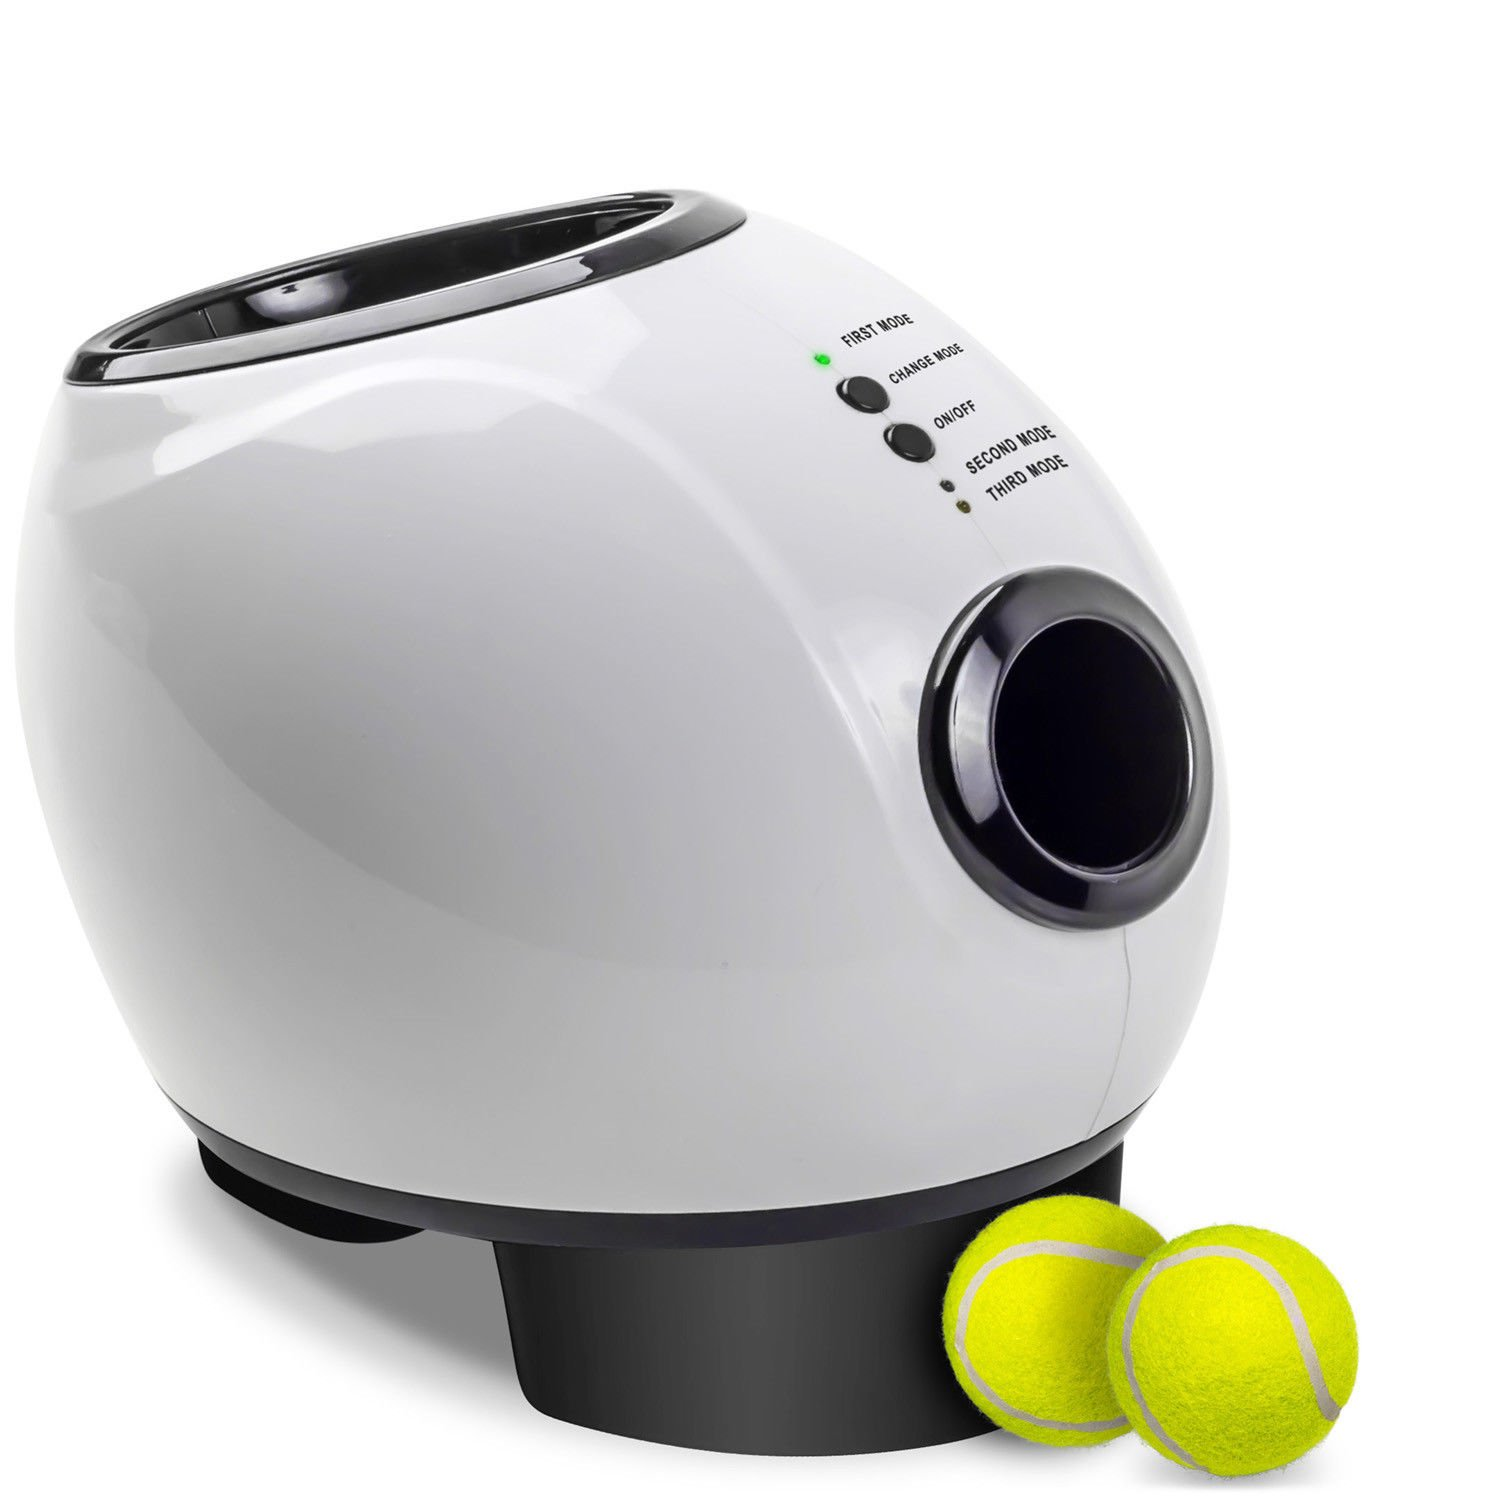 Marketworldcup Automatic Ball Launcher Dog Fetch Toy Pet Tennis Ball Thrower with Treat Drawer by Marketworldcup